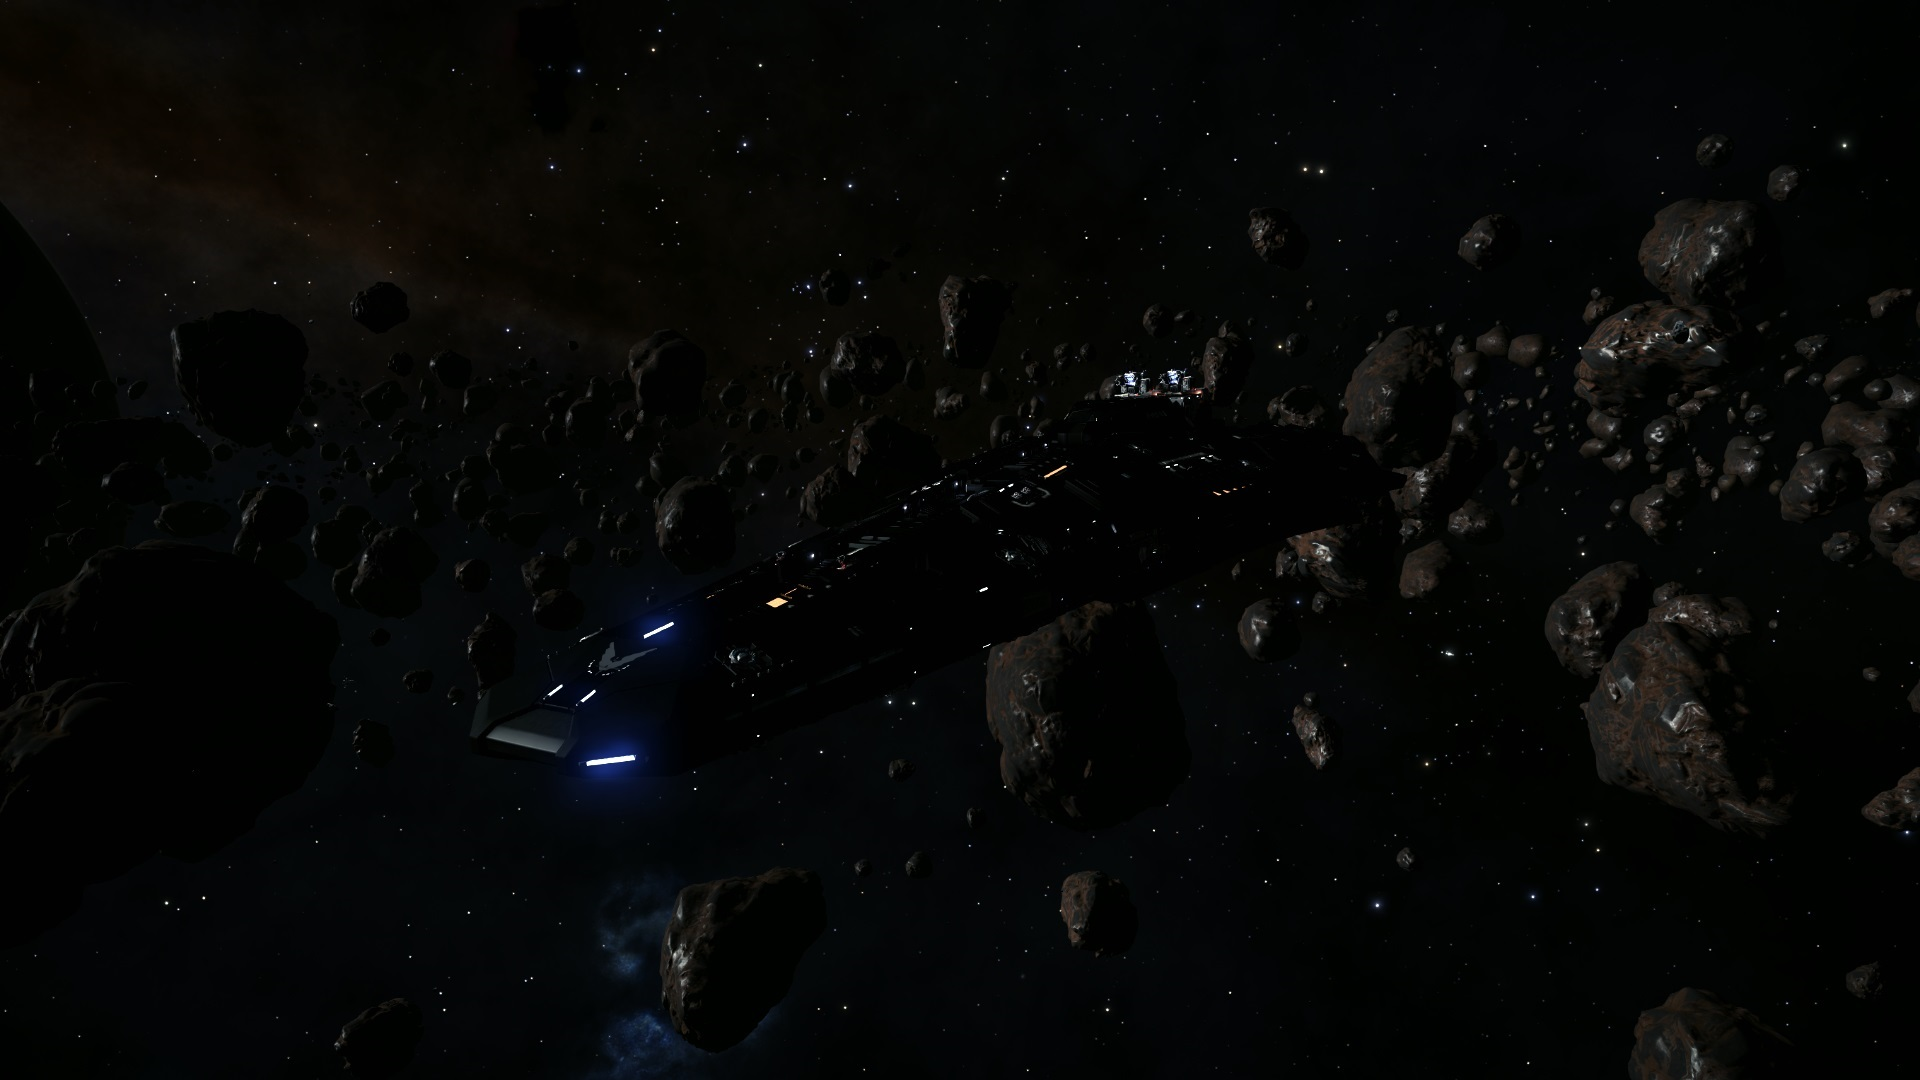 Ships Is it worth replacing Anaconda for Federal Corvette